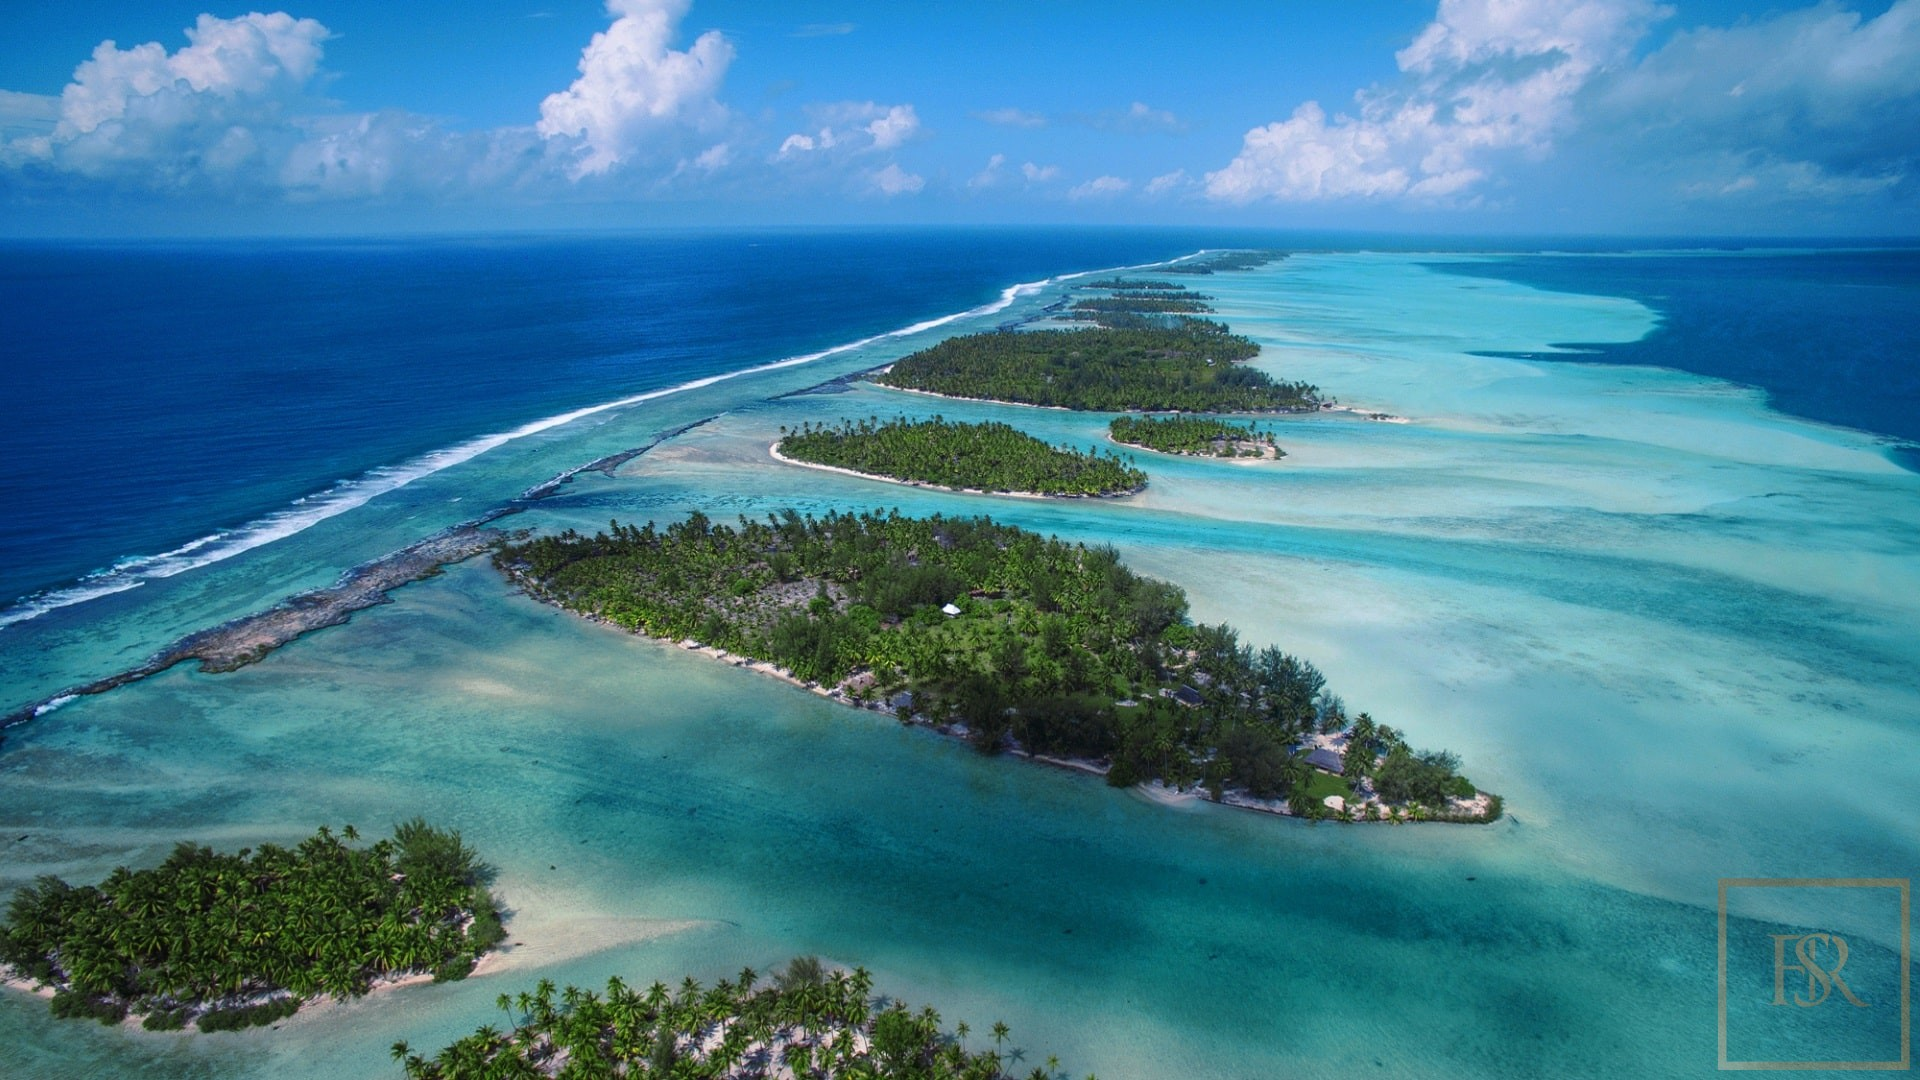 Private island - Taha'a Motu Moie, French Polynesia for sale For Super Rich